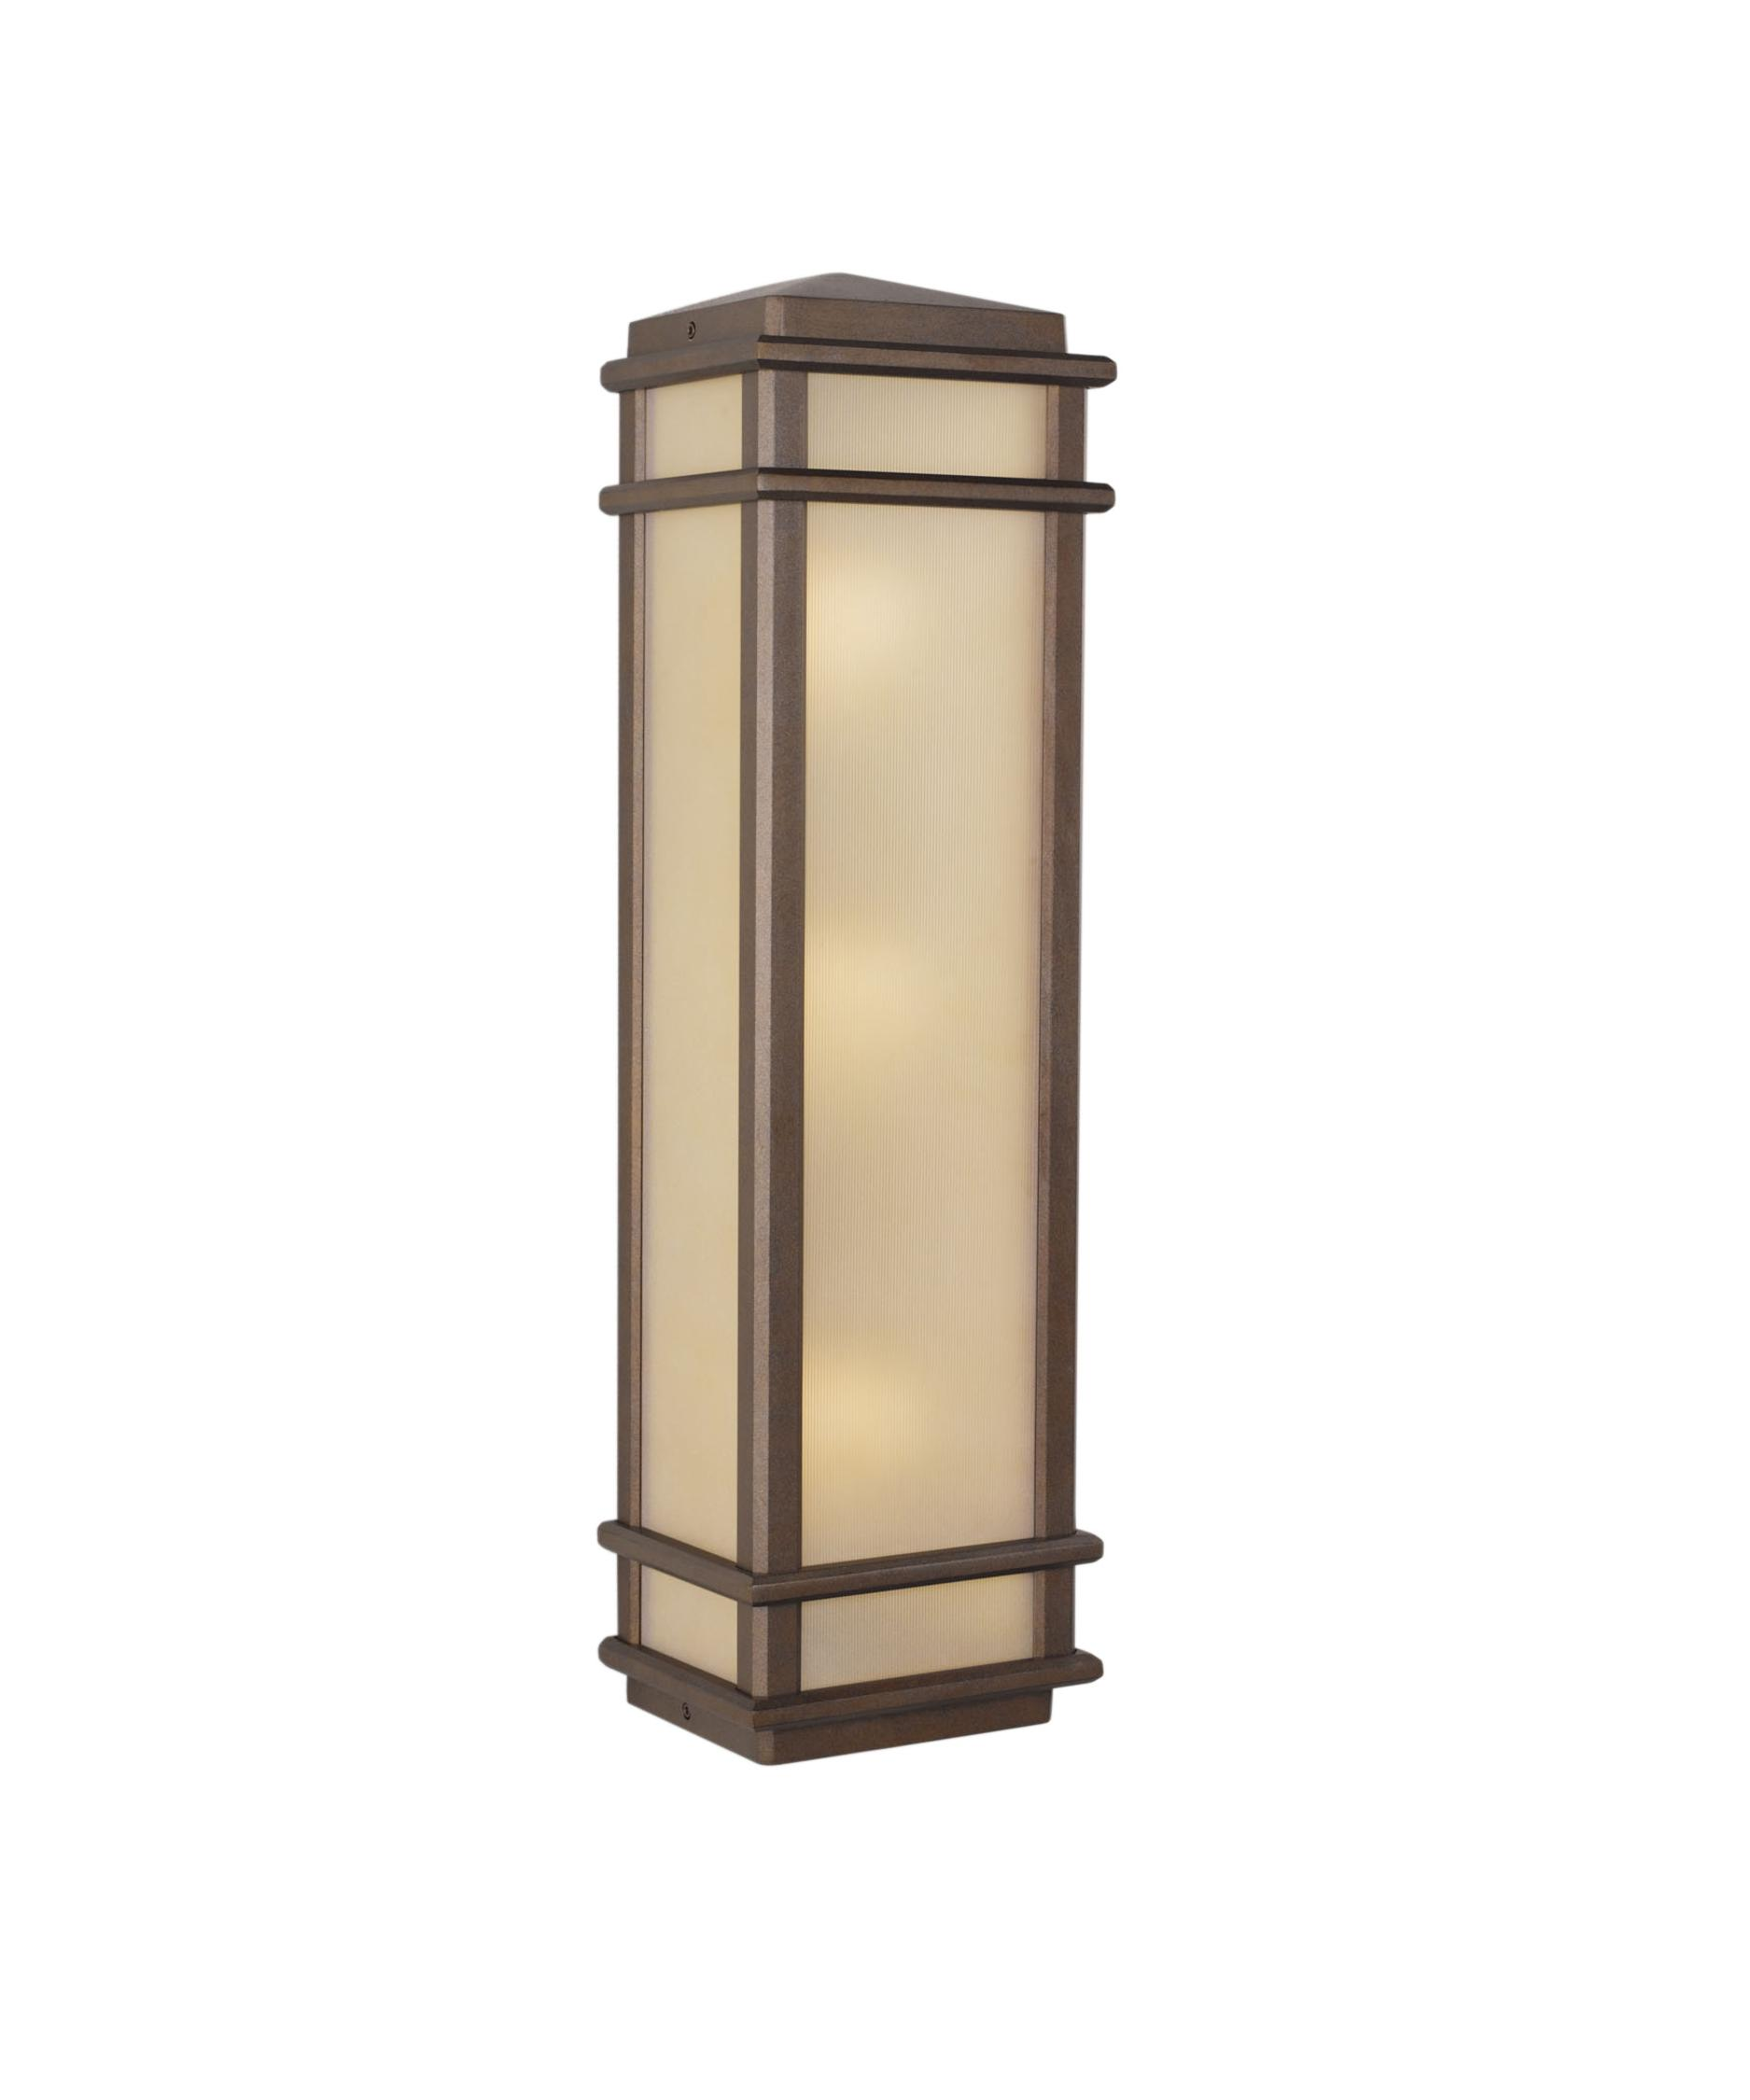 Feiss Lighting Shown In Satin Nickel Chrome Finish And